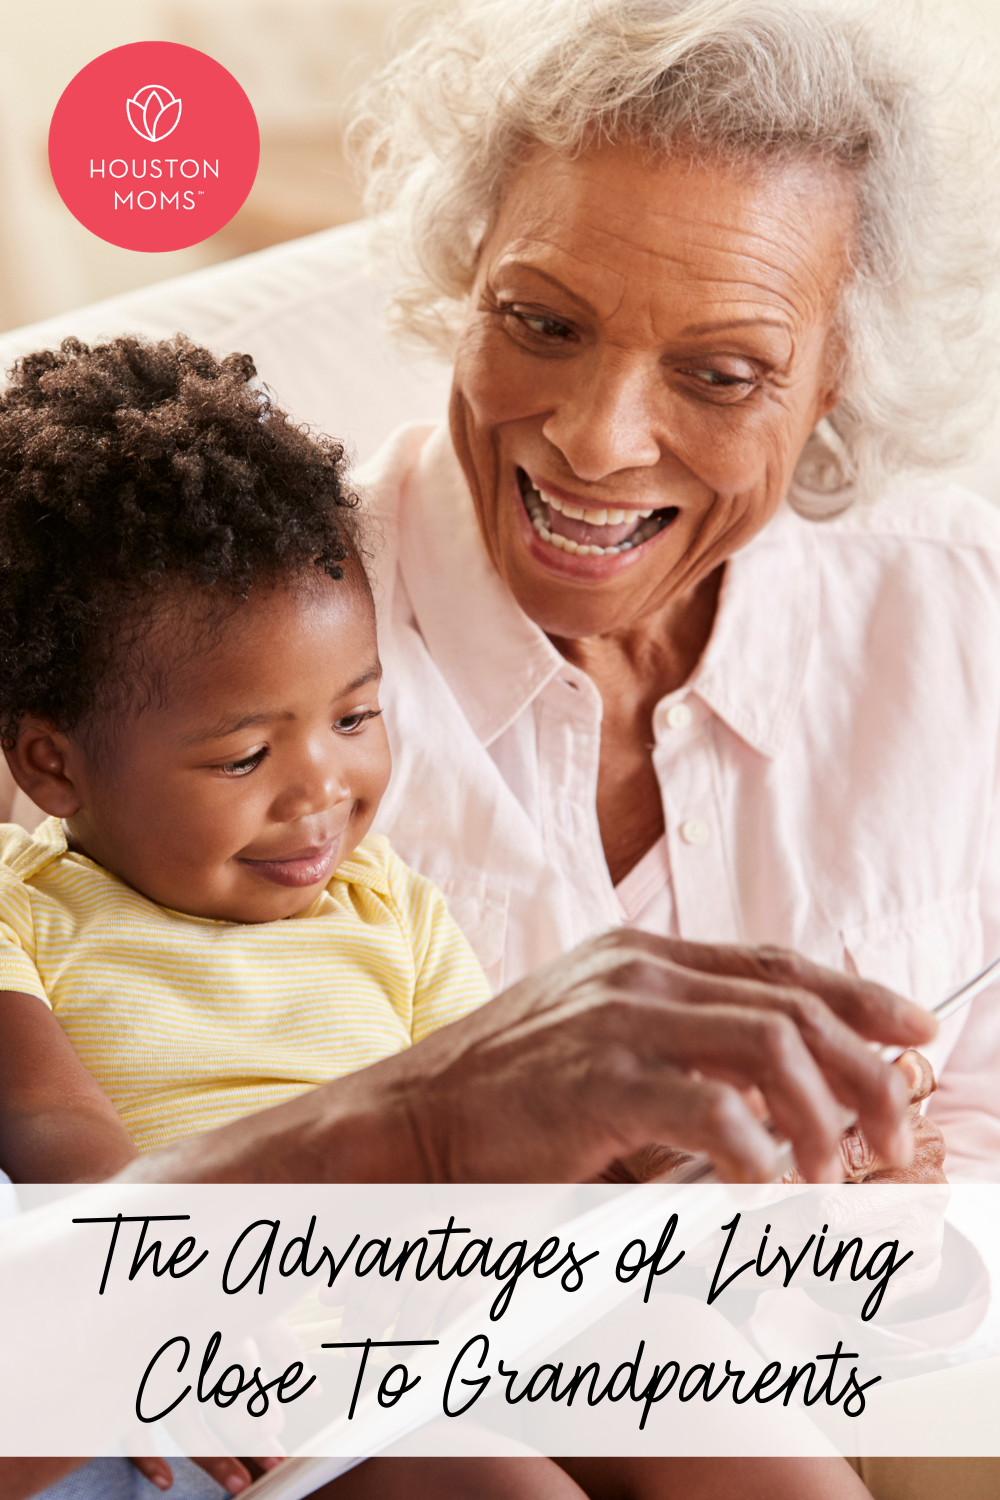 """Houston Moms """"The Advantages of Living Close to Grandparents"""" #houstonmoms #houstonmomsblog #momsaroundhouston"""